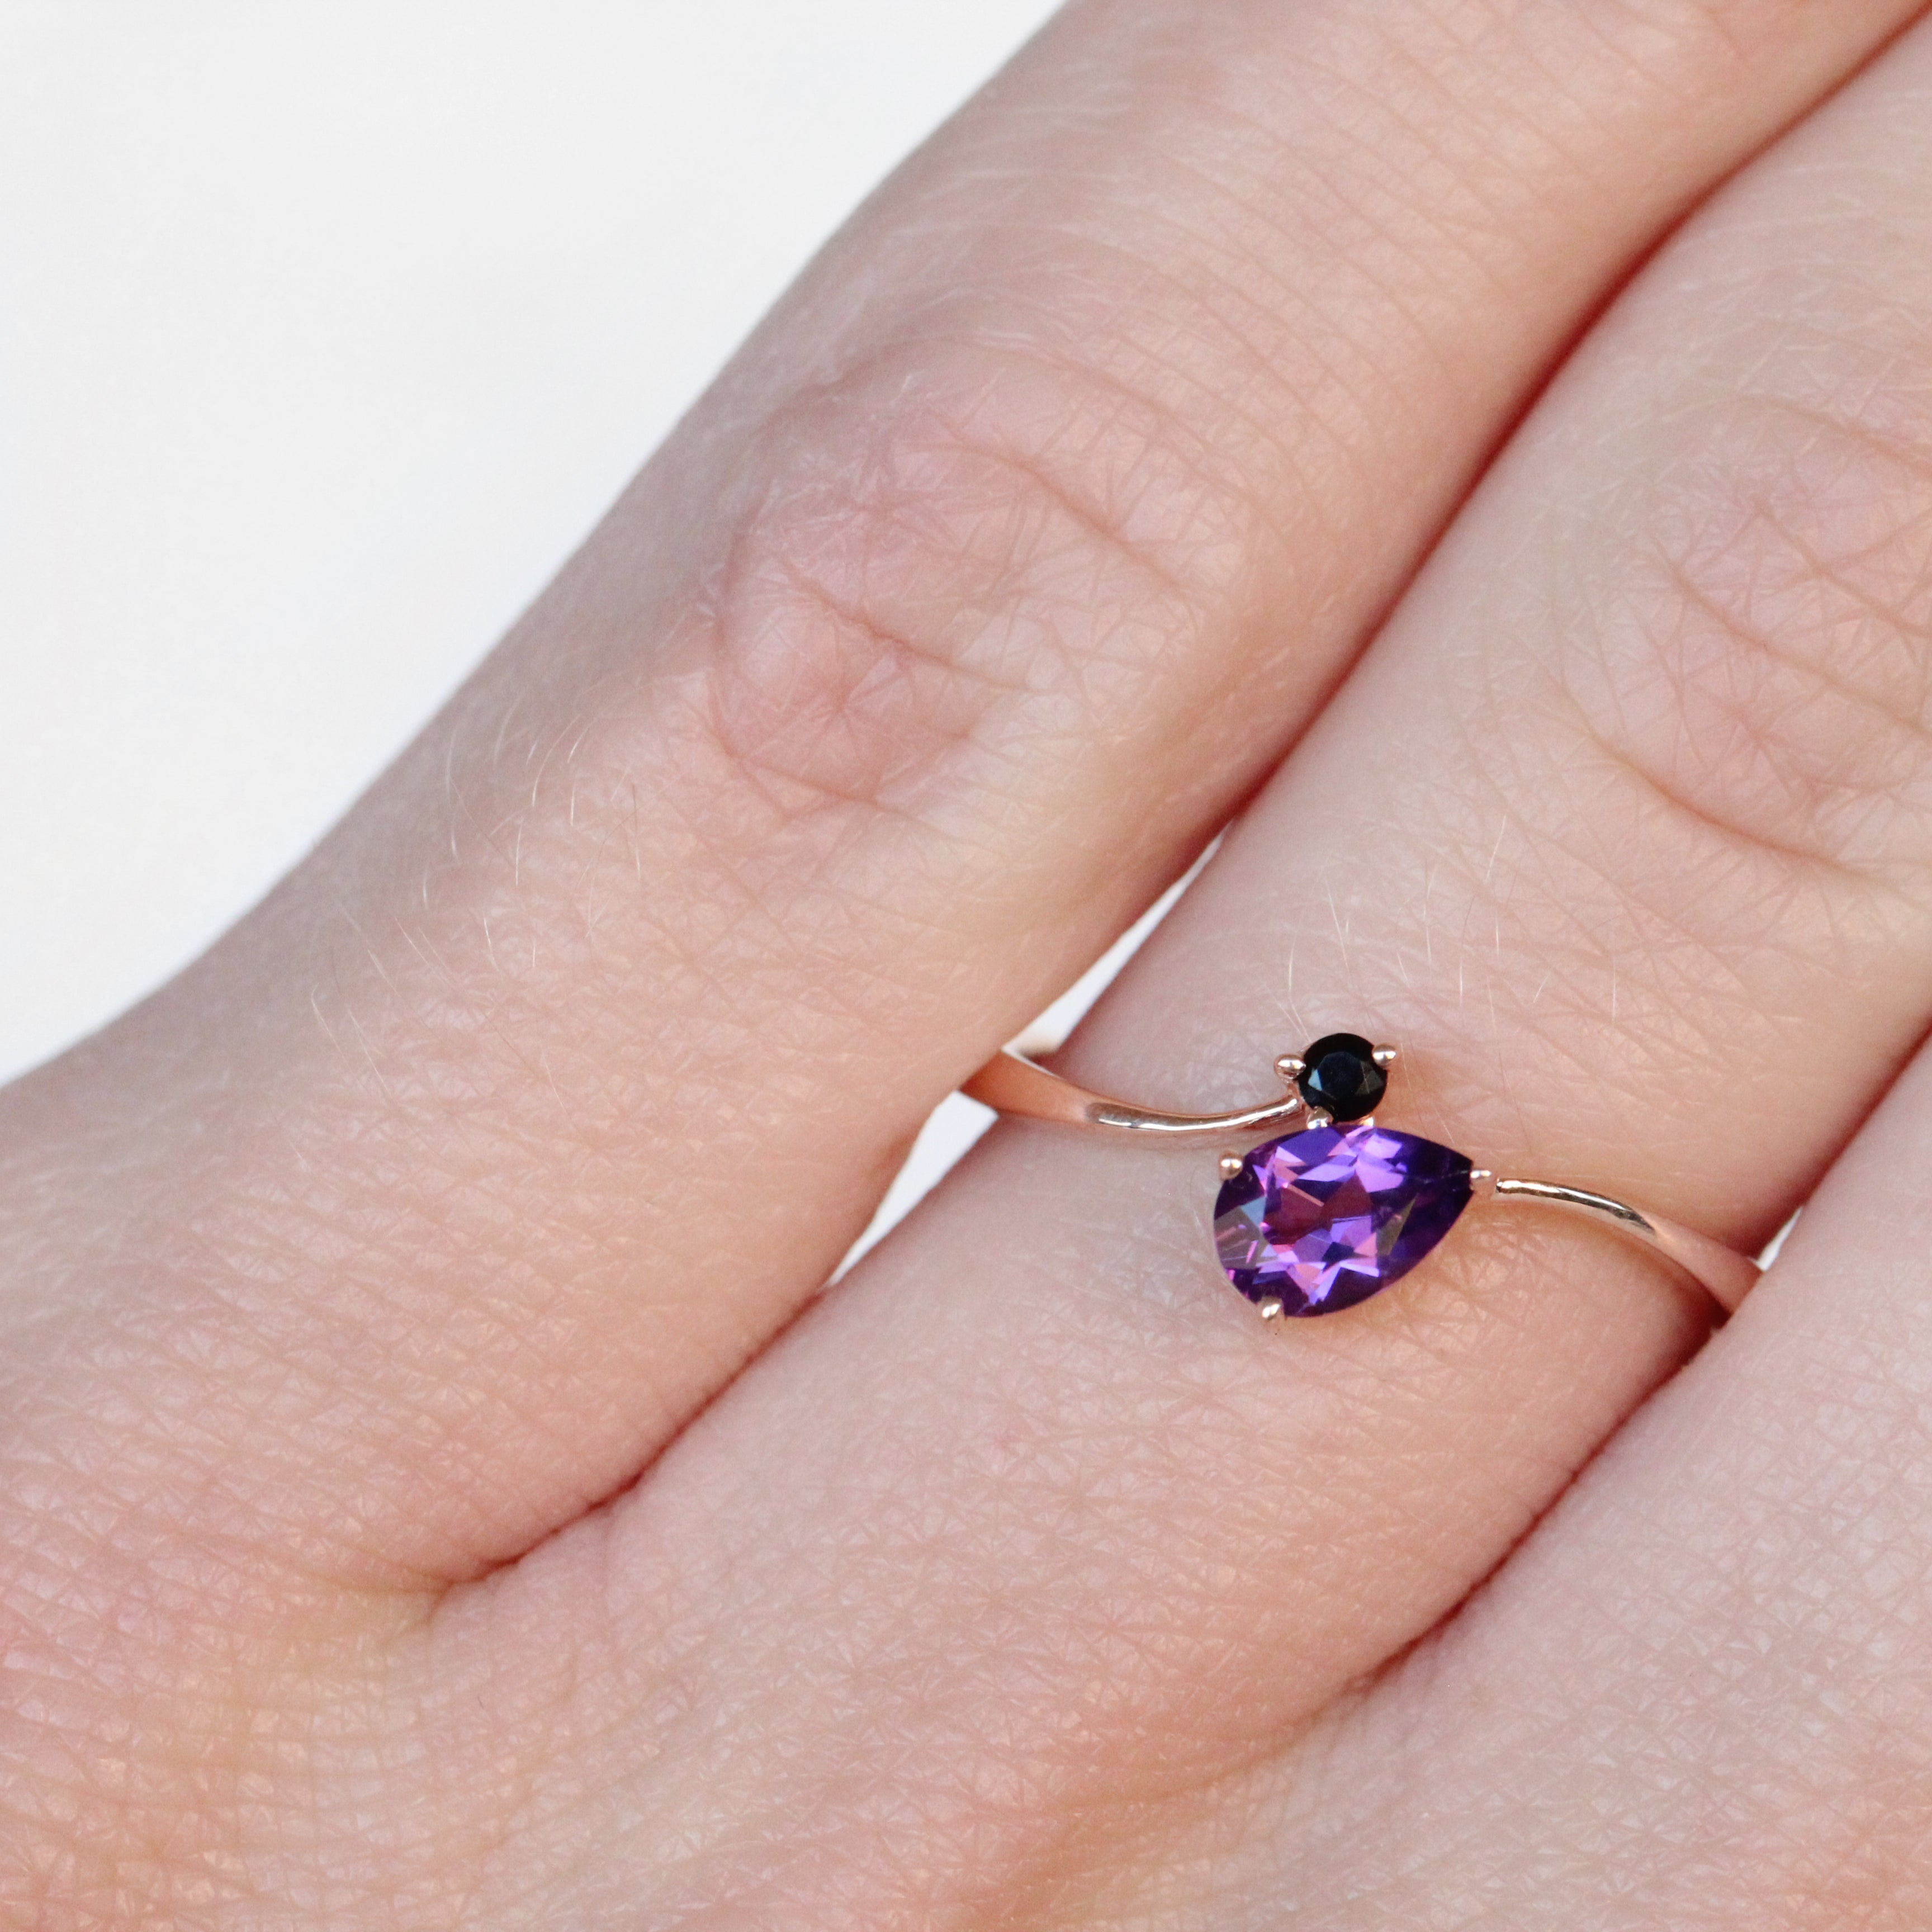 Piper Ring with Onyx and Pear Amethyst in 10k Rose Gold - Ready to Size and Ship - Celestial Diamonds ® by Midwinter Co.